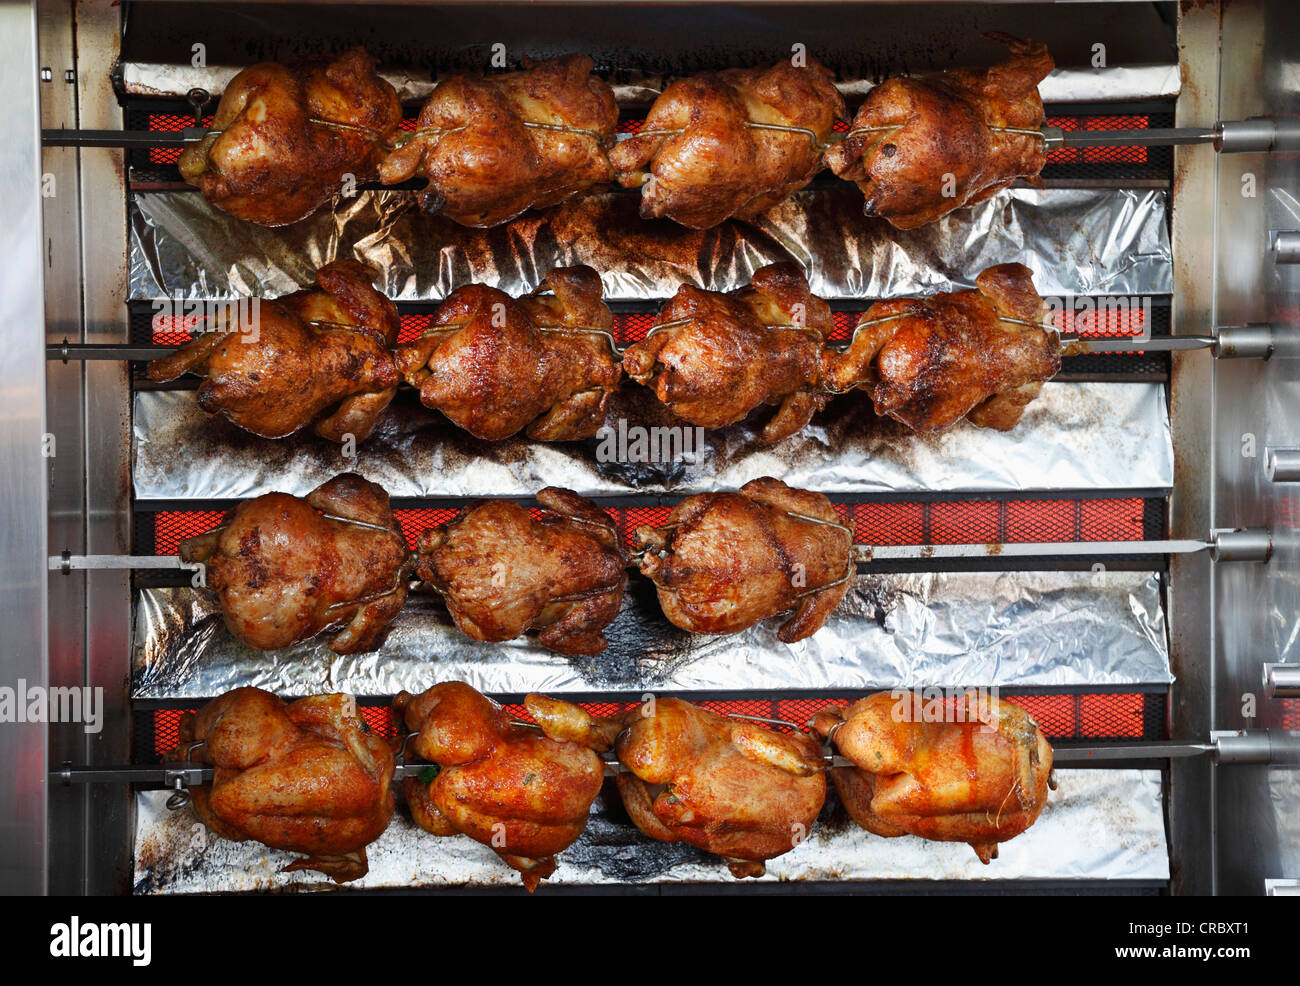 Fried chicken on a grill, Klosterbraeustueberl Reutberg, brewery tavern of Reutberg Abbey, Sachsenkam municipality - Stock Image